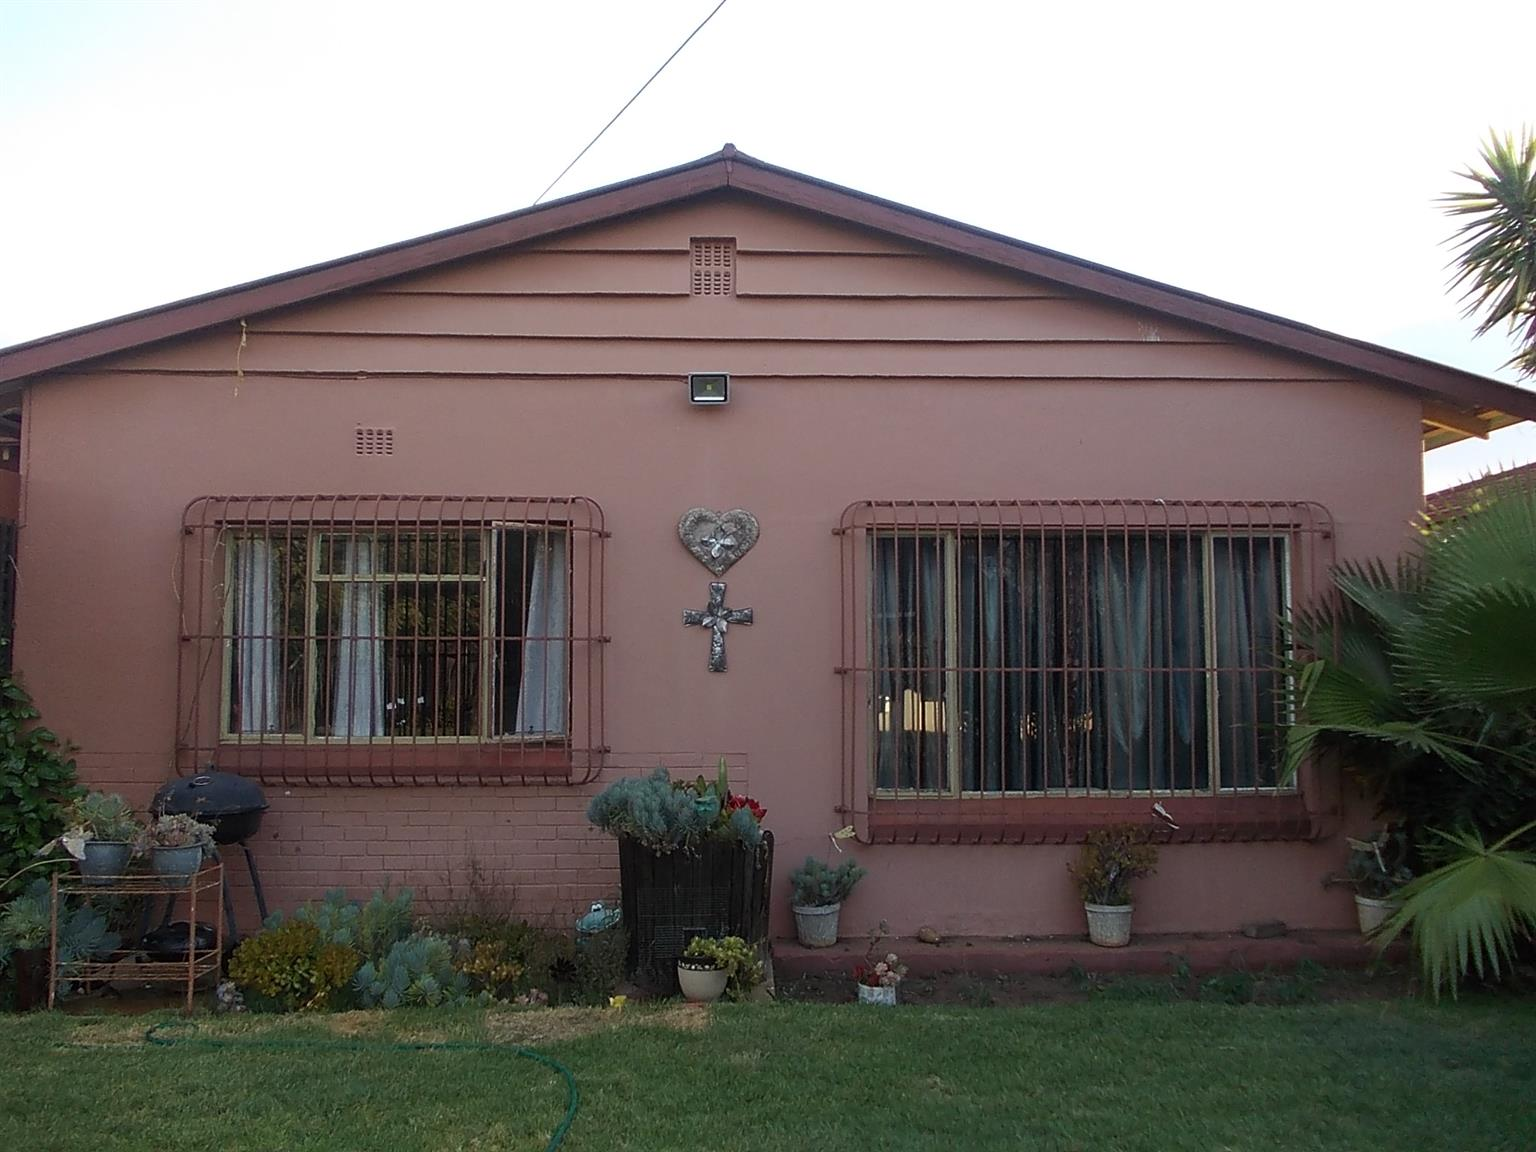 3 BEDROOM HOUSE FOR SALE IN CLAREMONT!!!